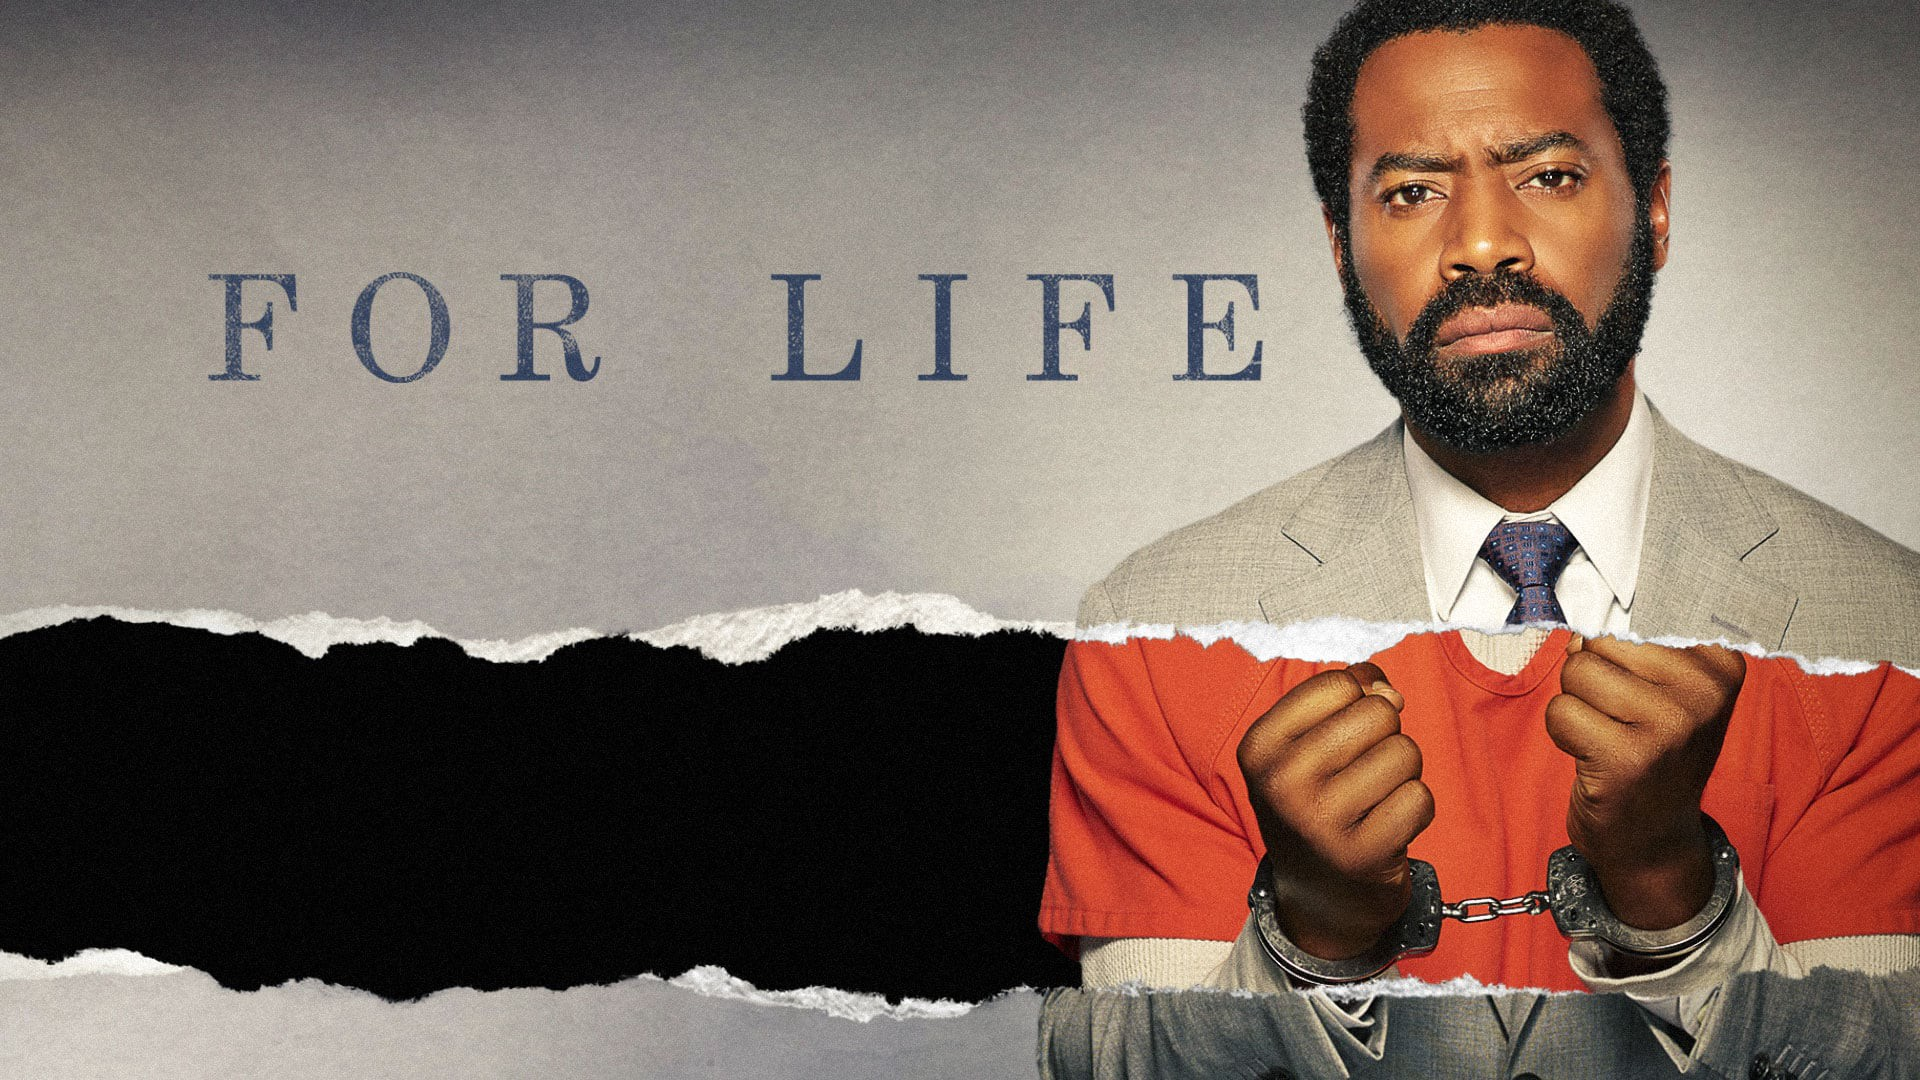 For Life Episode 2